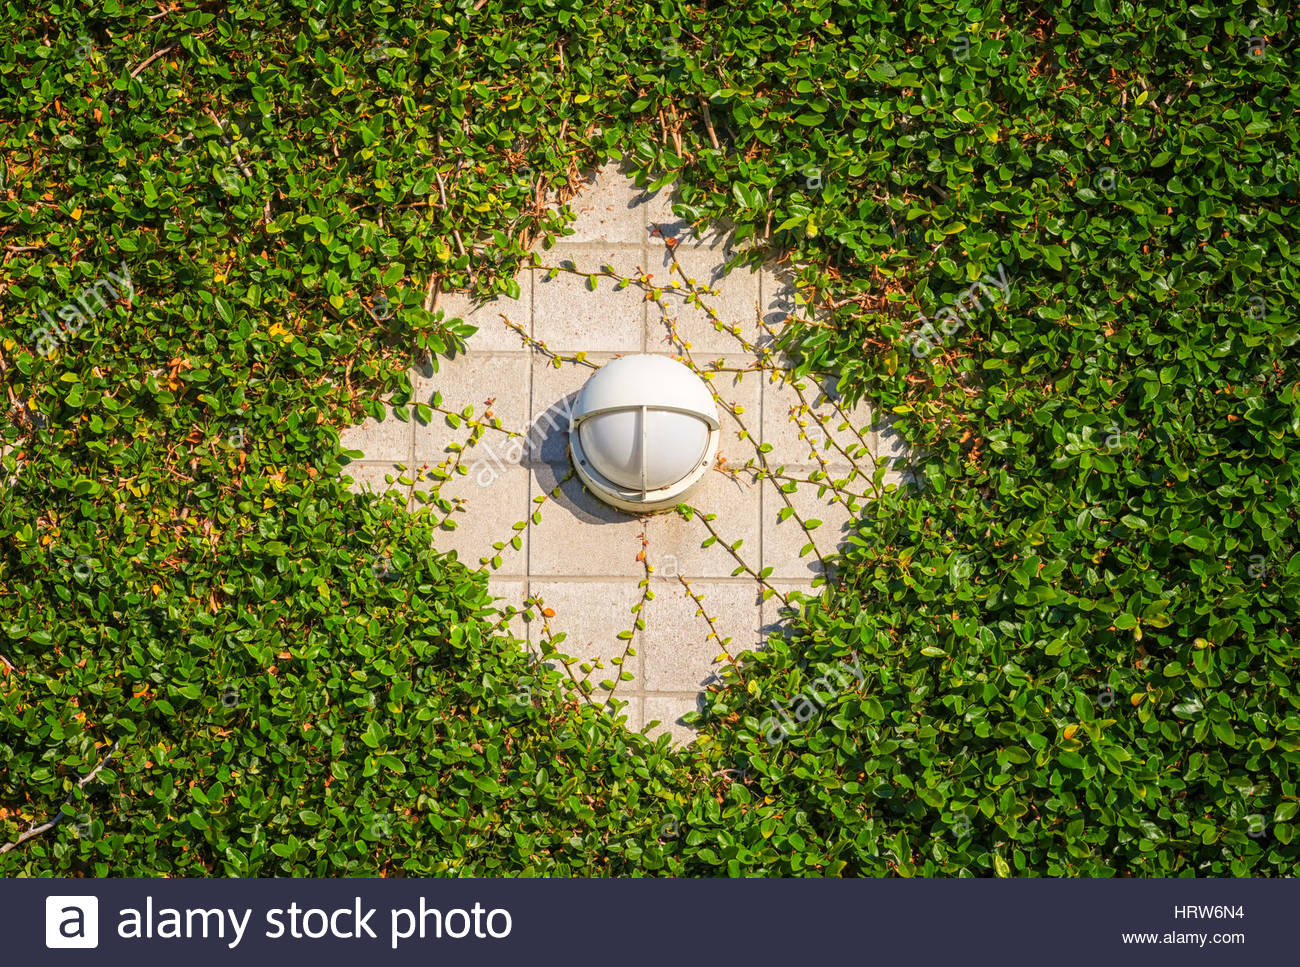 A lamp fixture on a concrete wall surrounded by ivy plant. - Stock Image